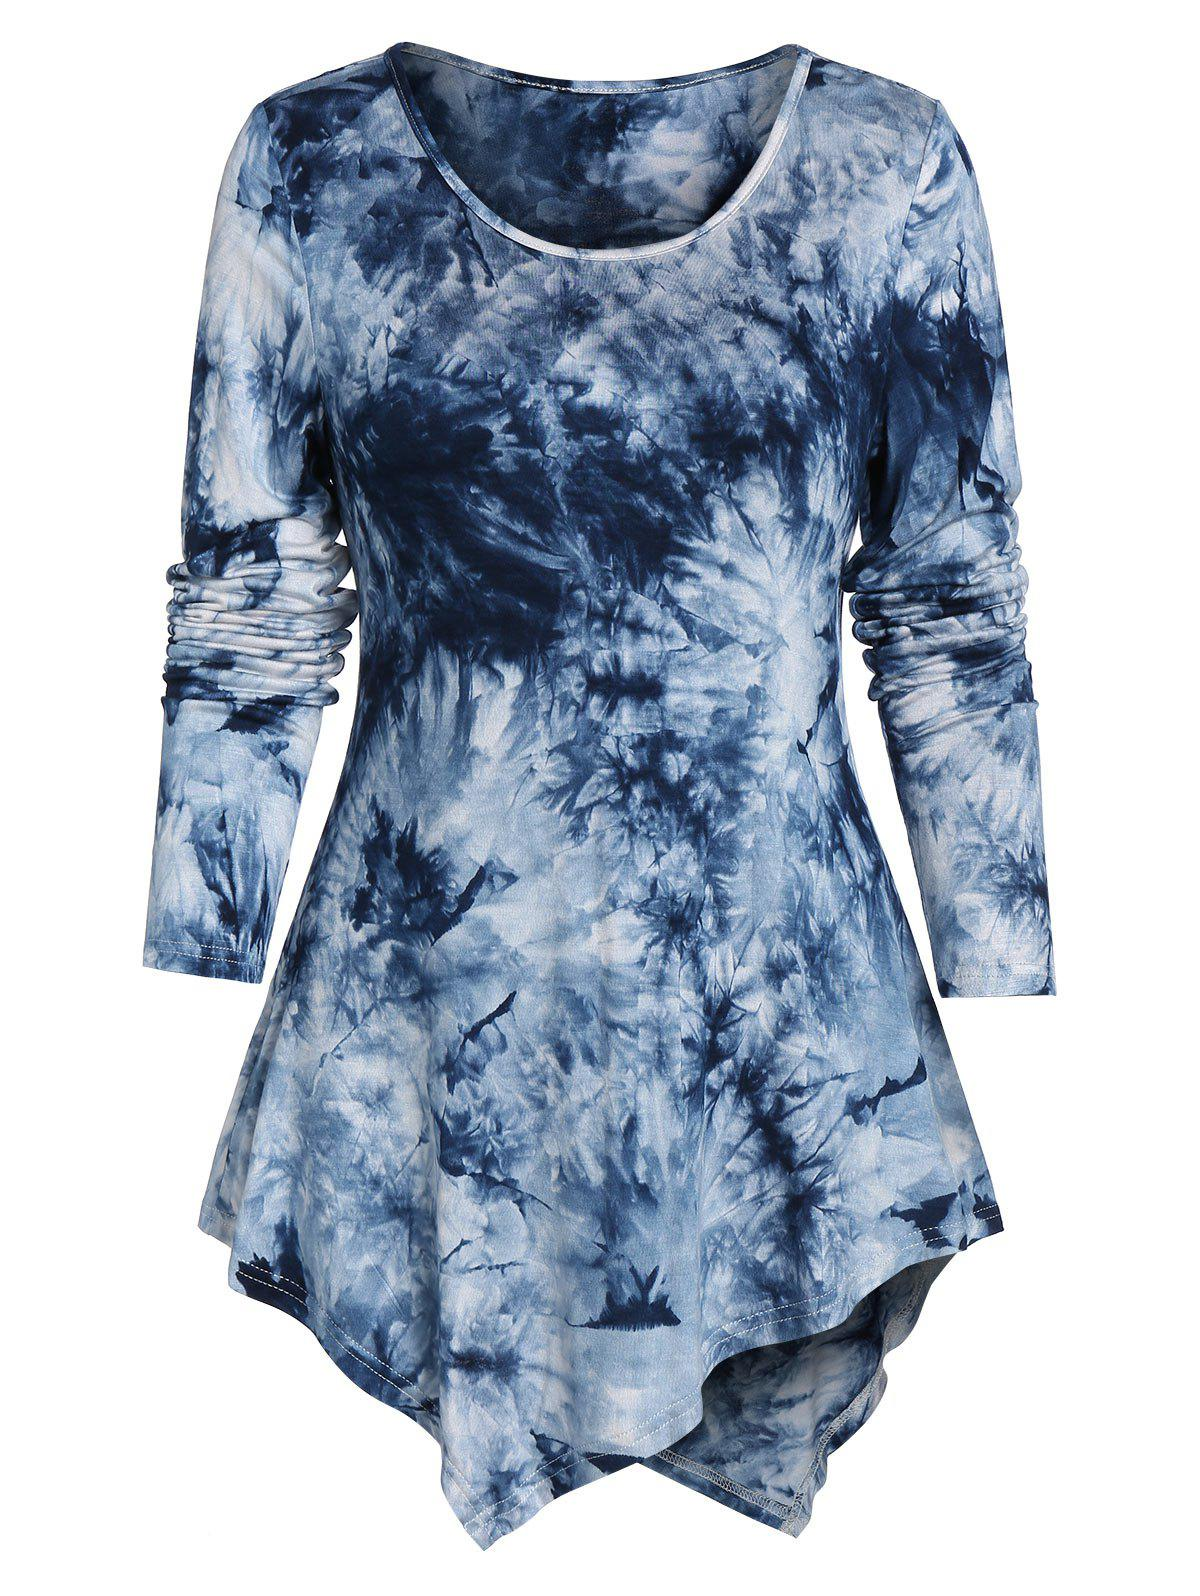 Buy Asymmetrical Tie Dye T-shirt